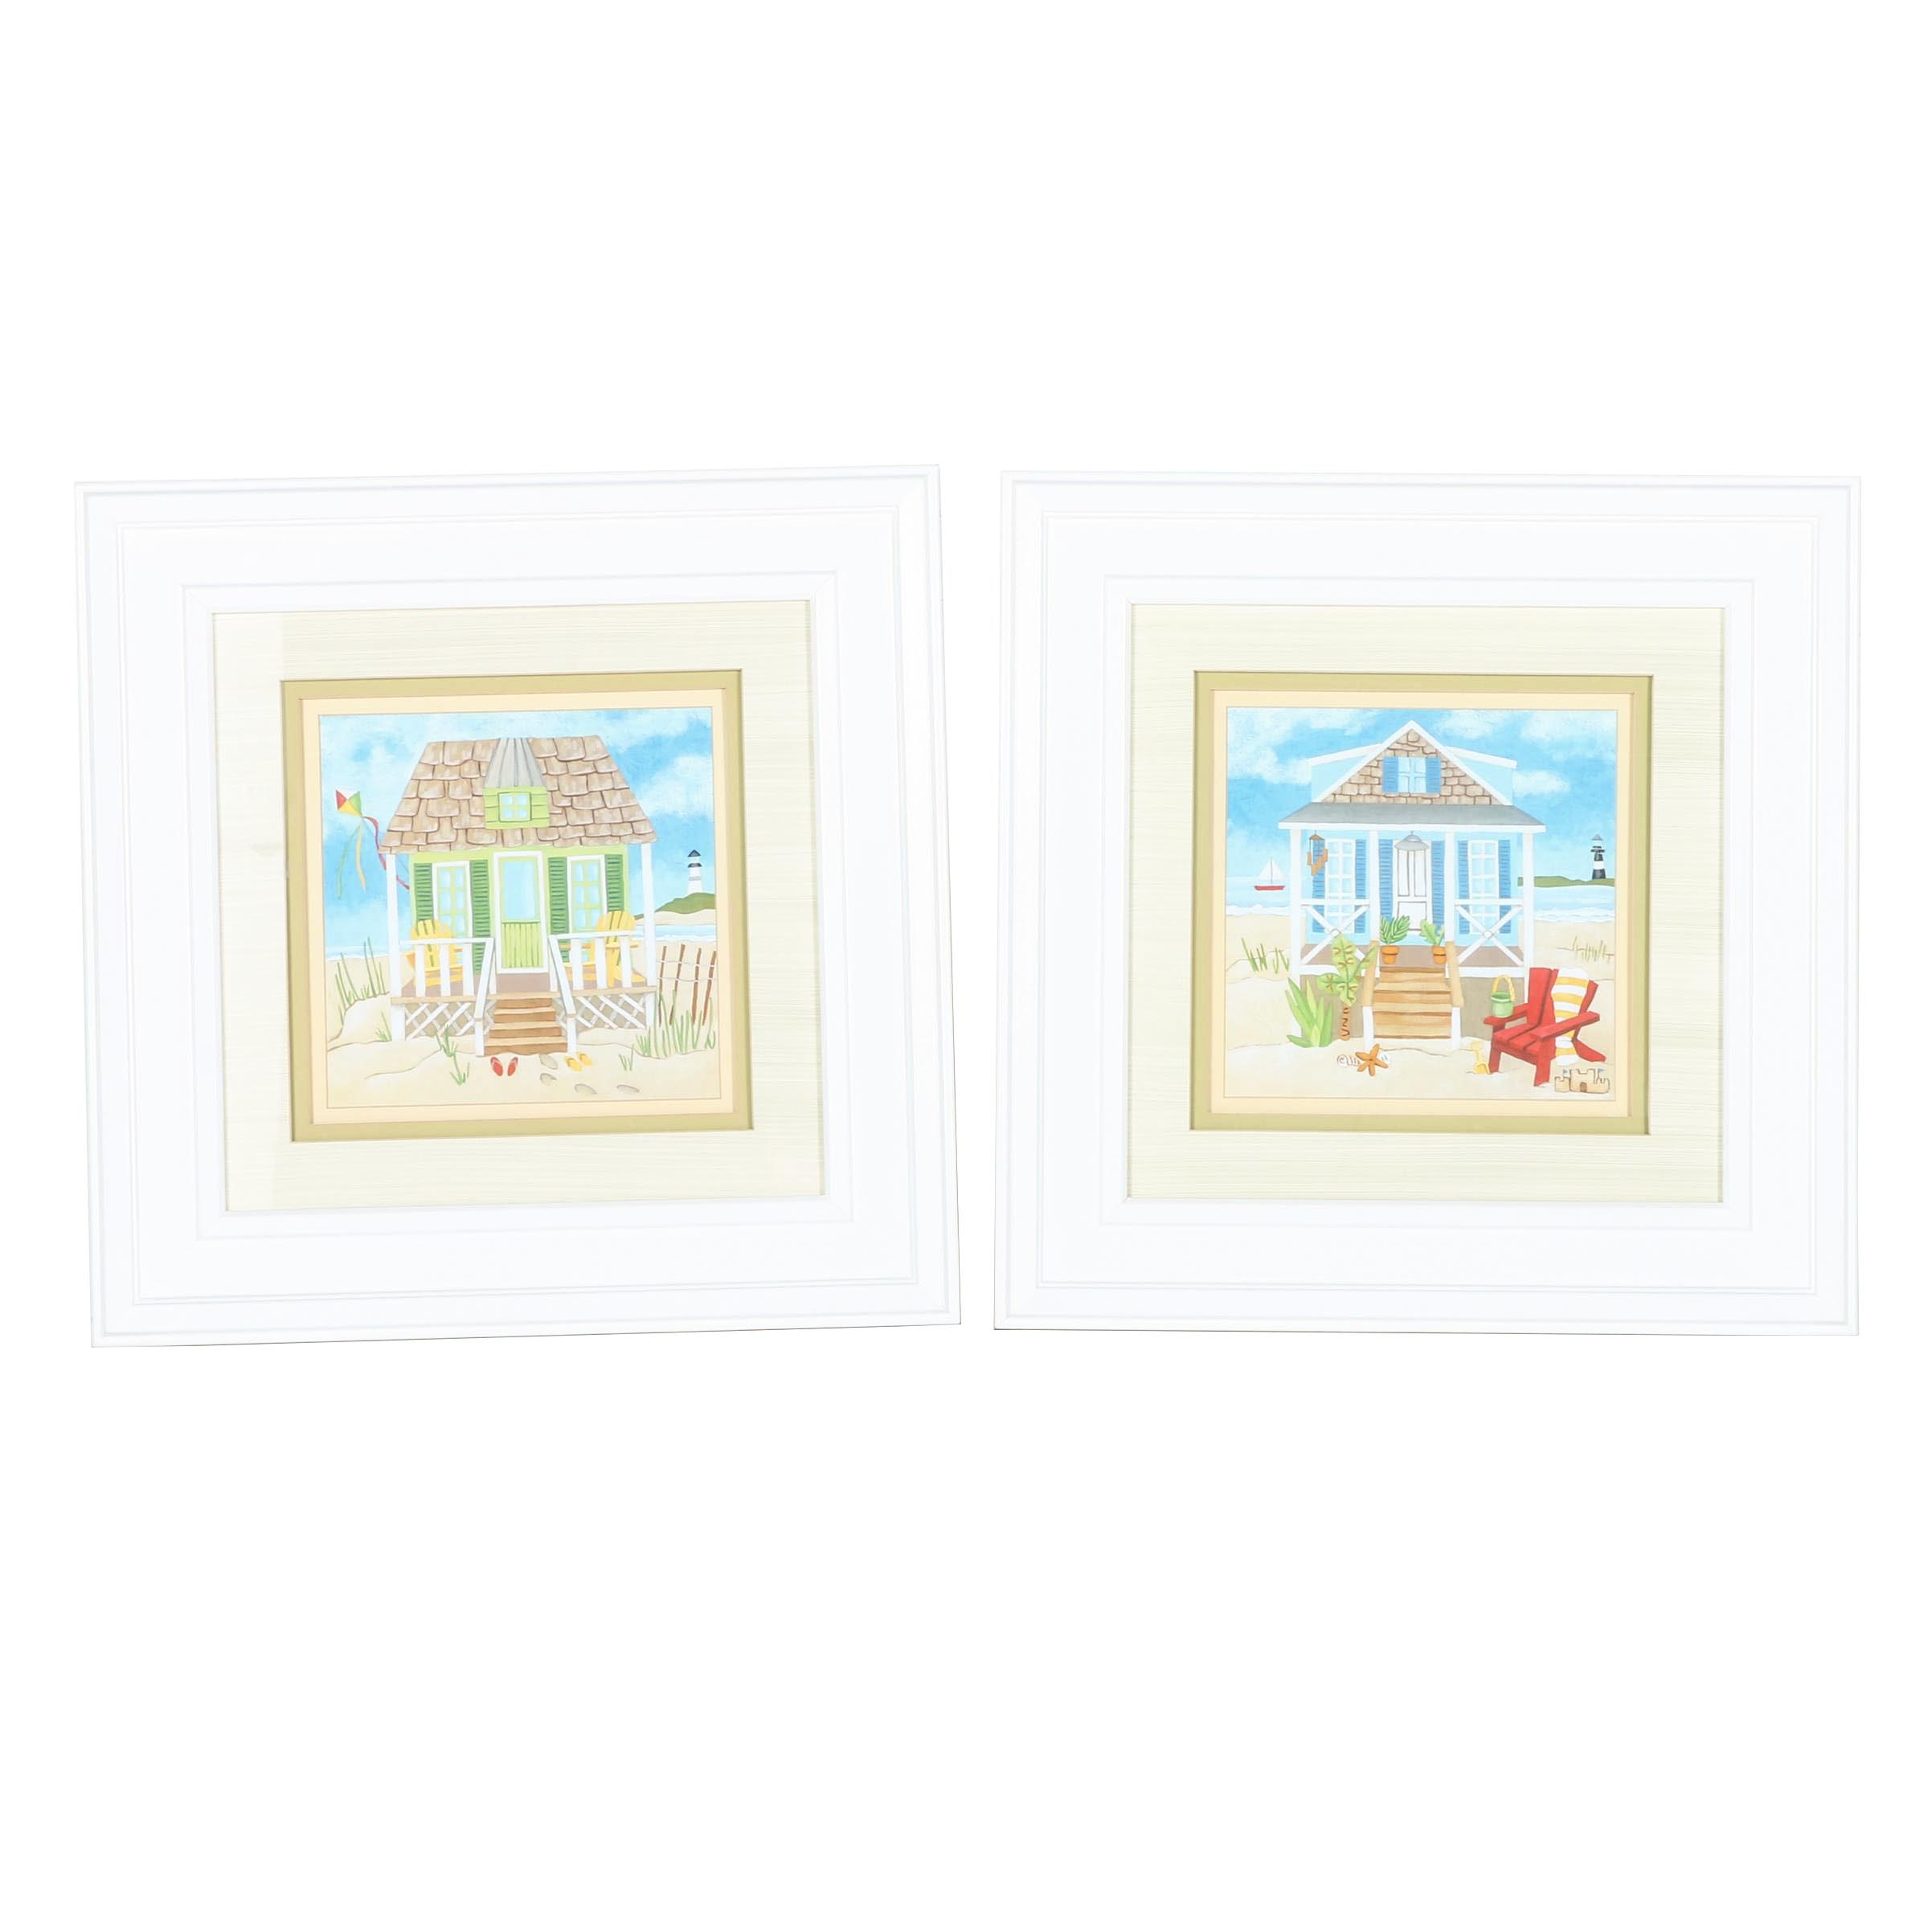 Offset Lithographs of Beach Houses